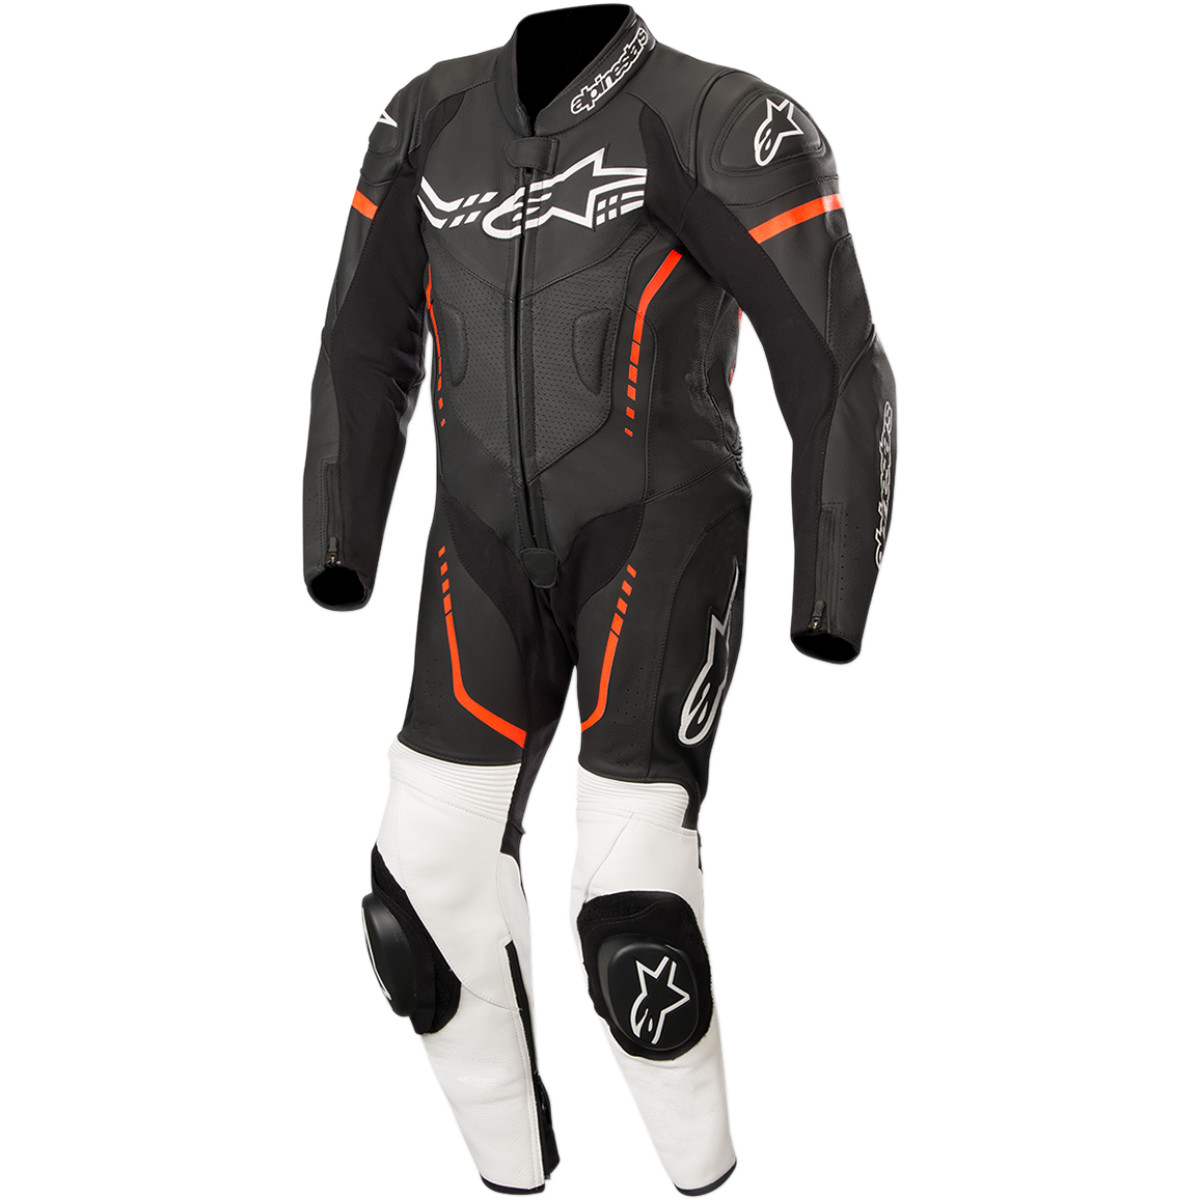 Alpinestars Youth Gp Plus Cup One-piece Leather Suit One-piece Suit (black/red/white, Euro Size 130)